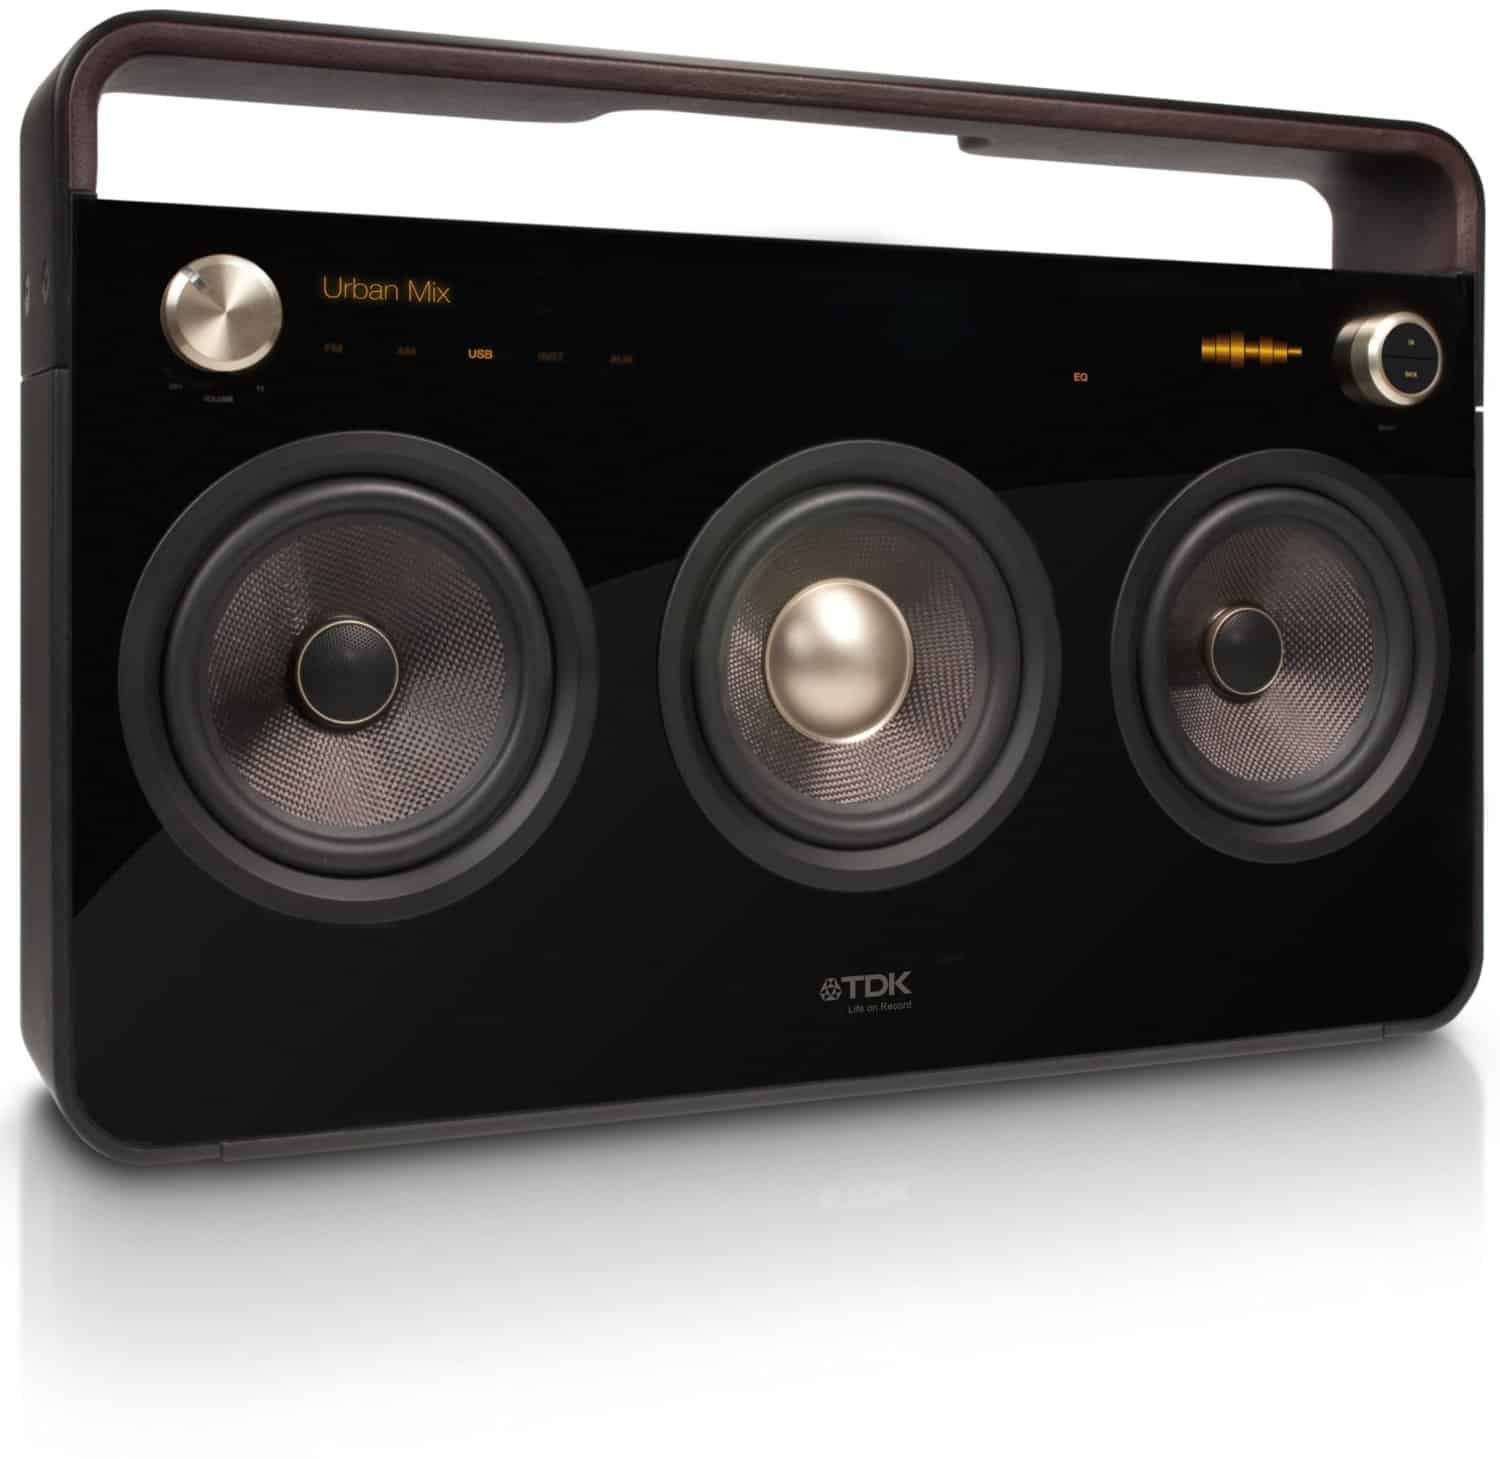 Cool Music Speakers Tdk Life On Record 3 Speaker Boombox Audio System